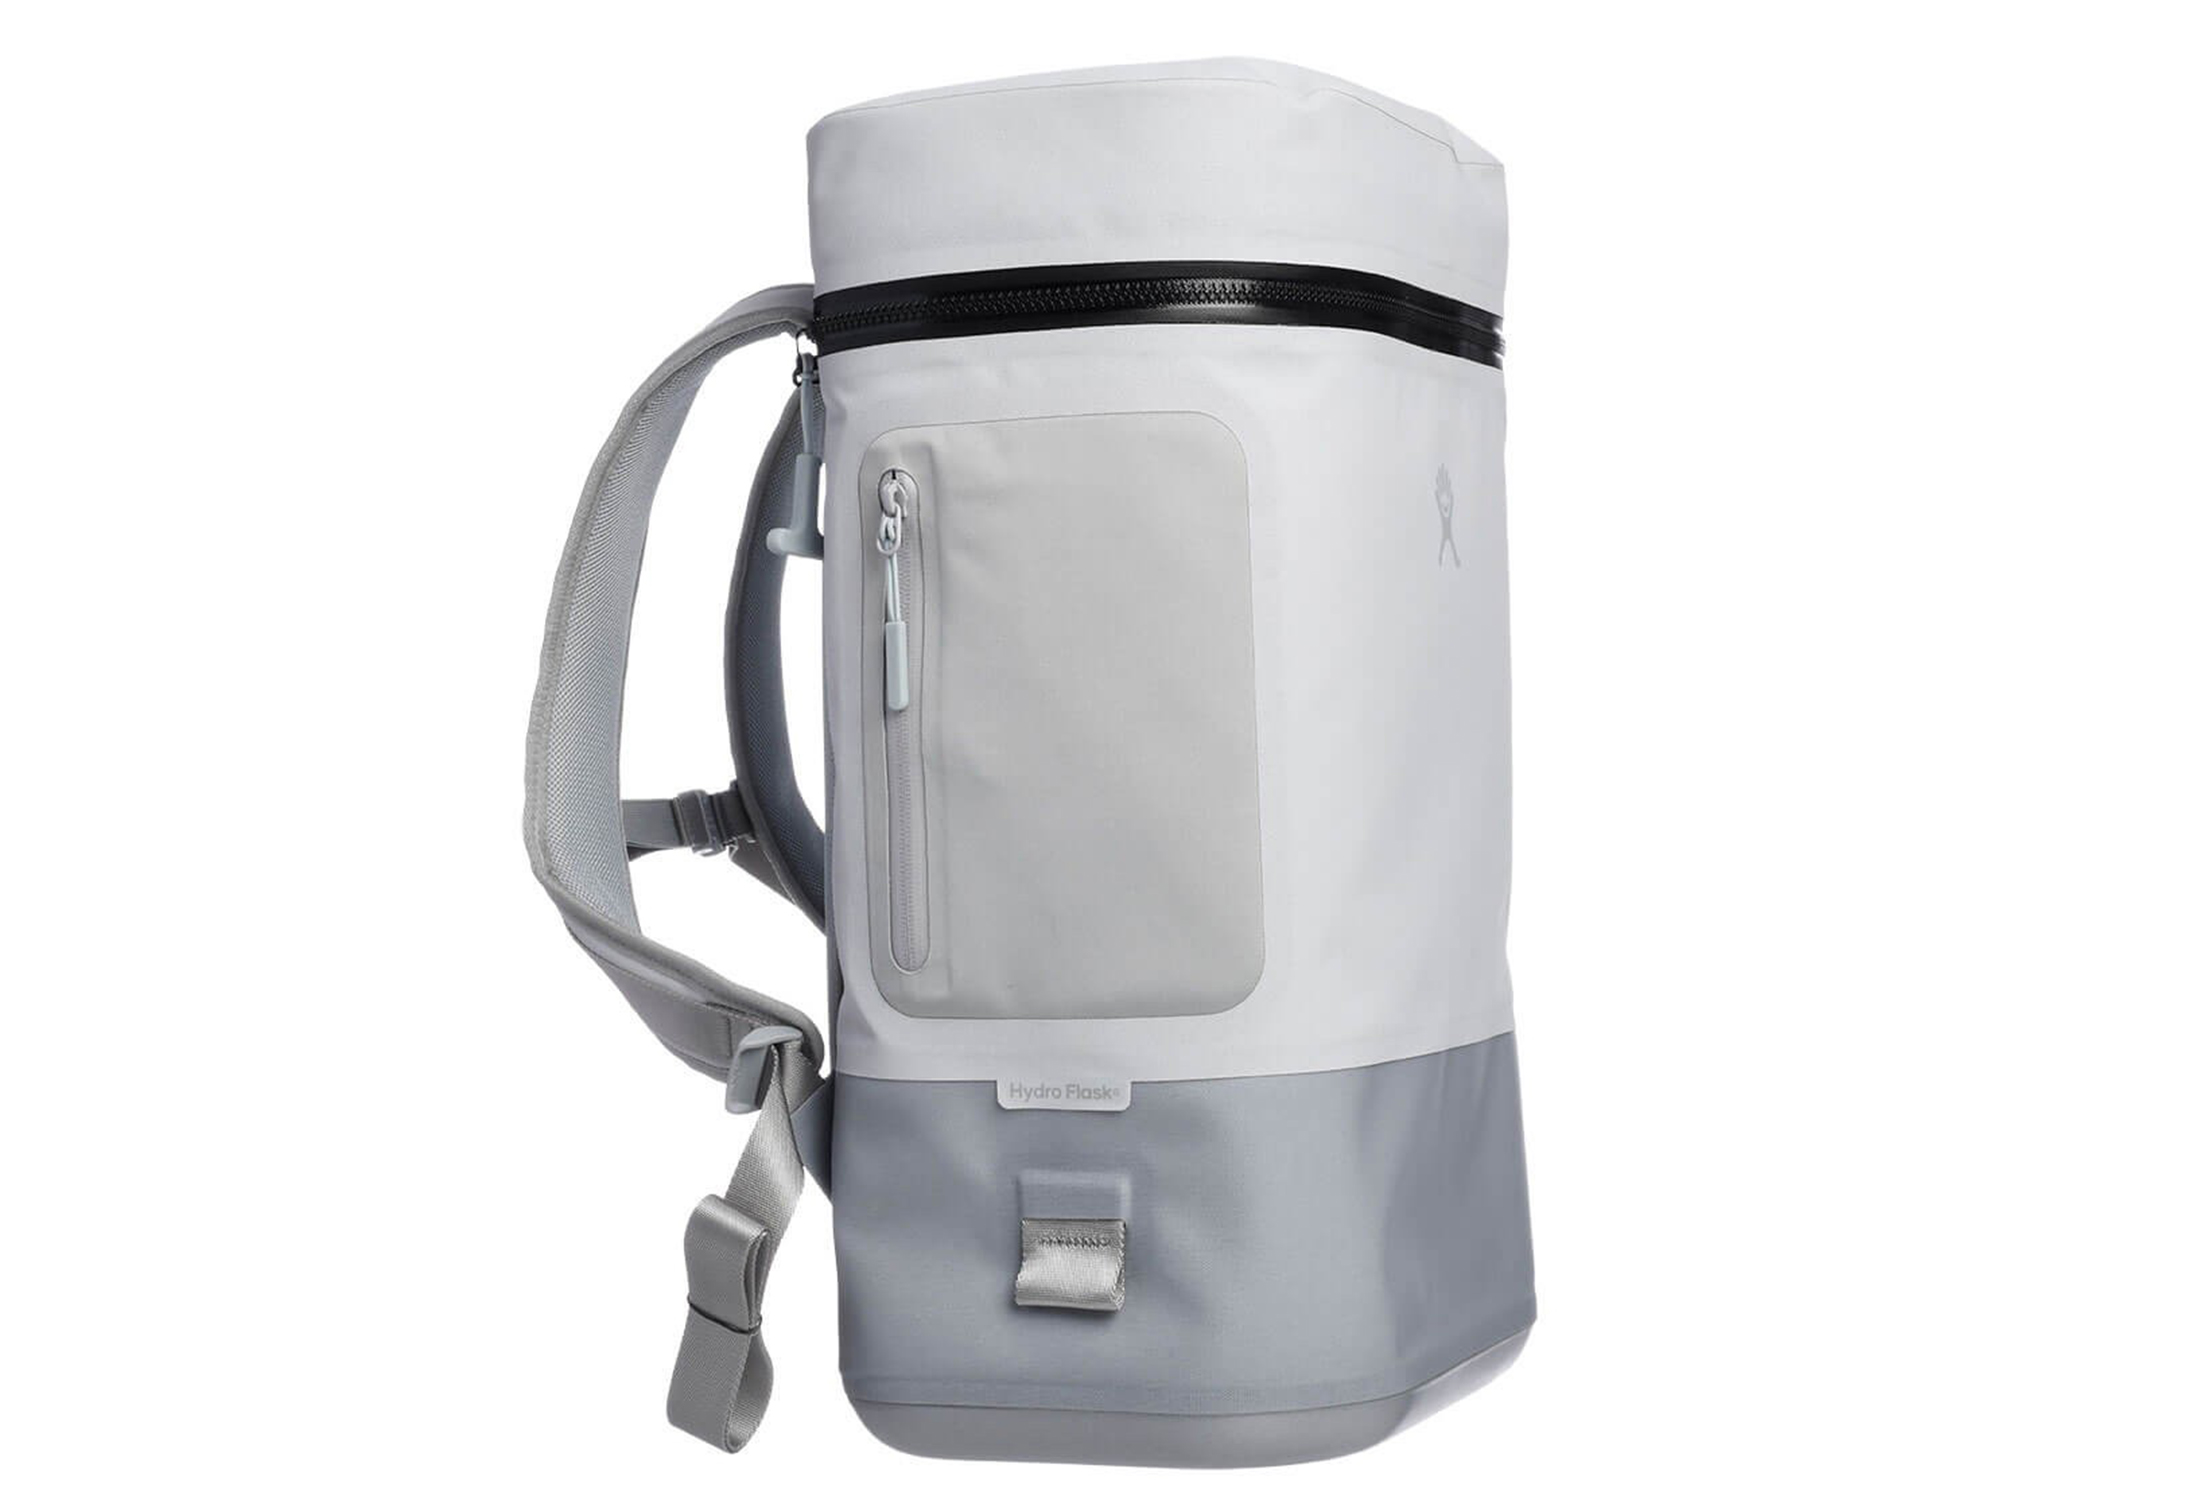 Hydro Flask cooler backpack